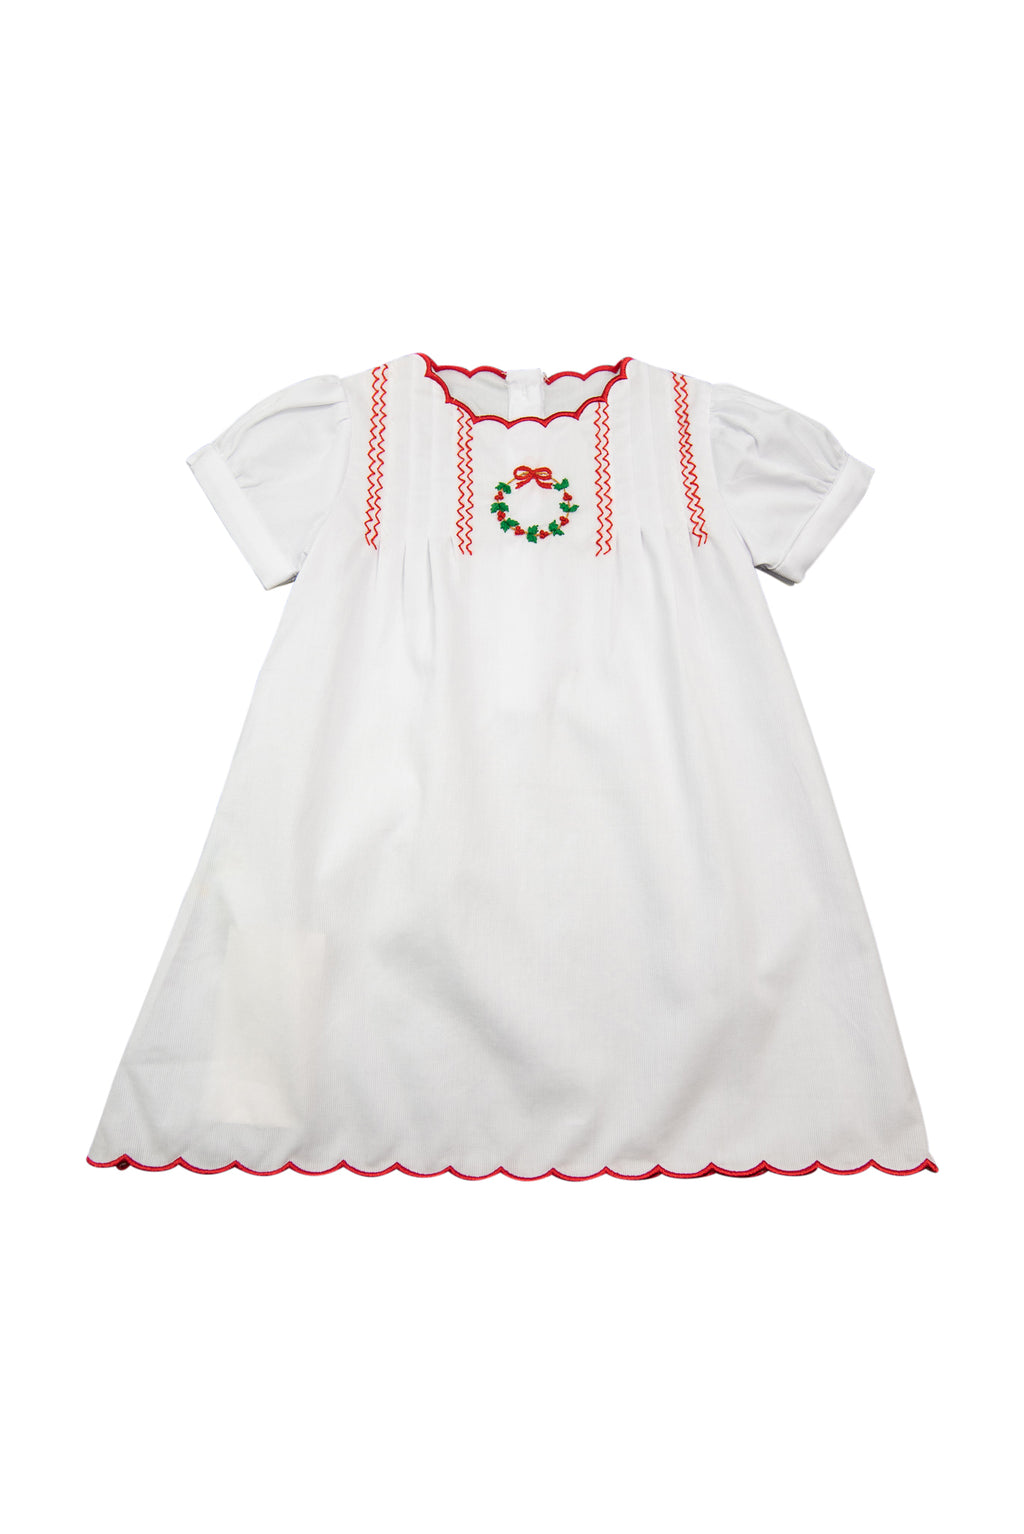 Girls Embroidered Wreath Scalloped Dress